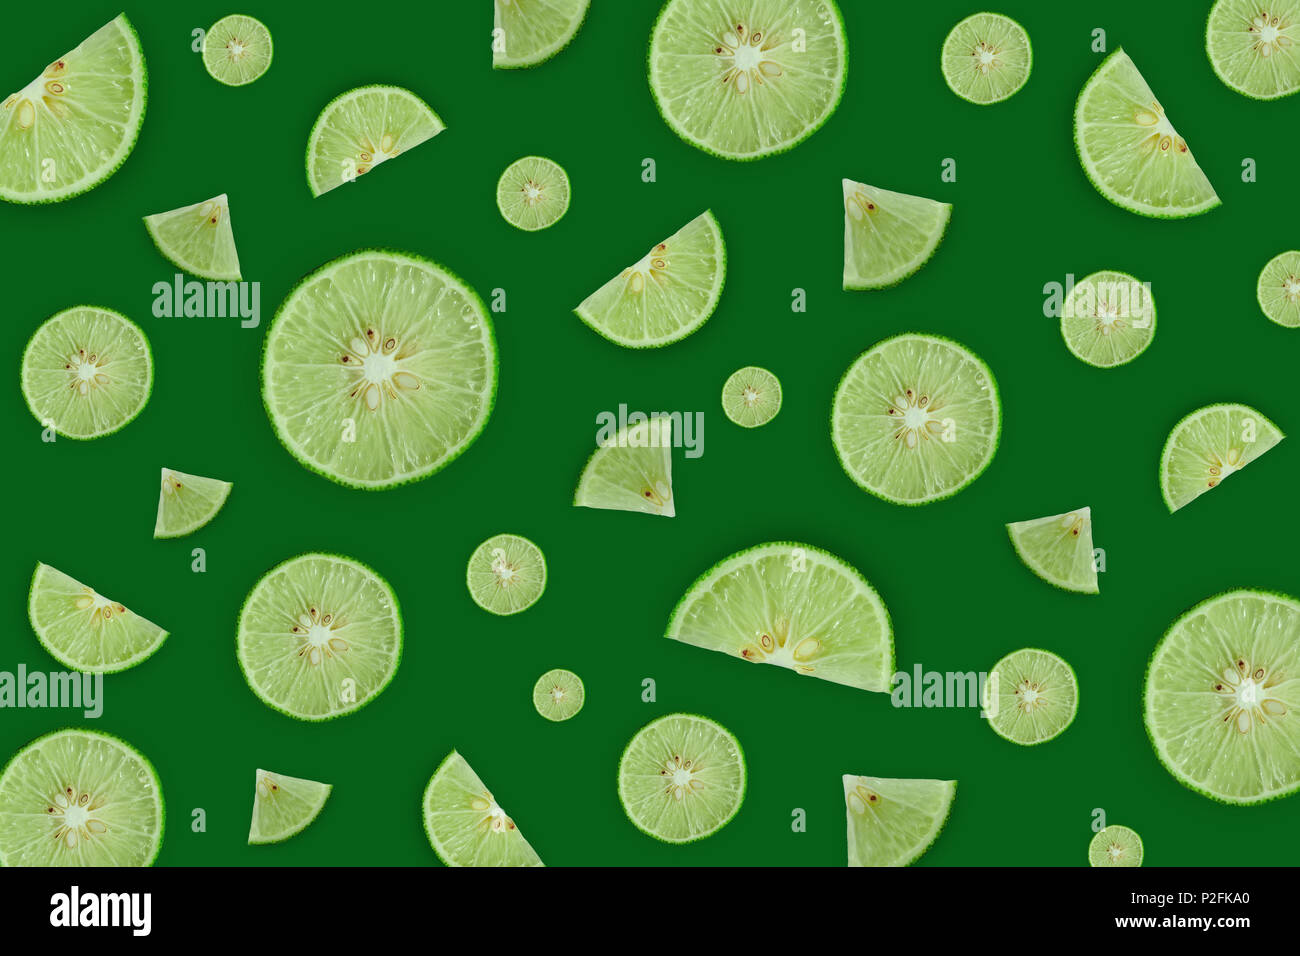 Wallpaper And Background Of Green Lemon Or Lime On The Green